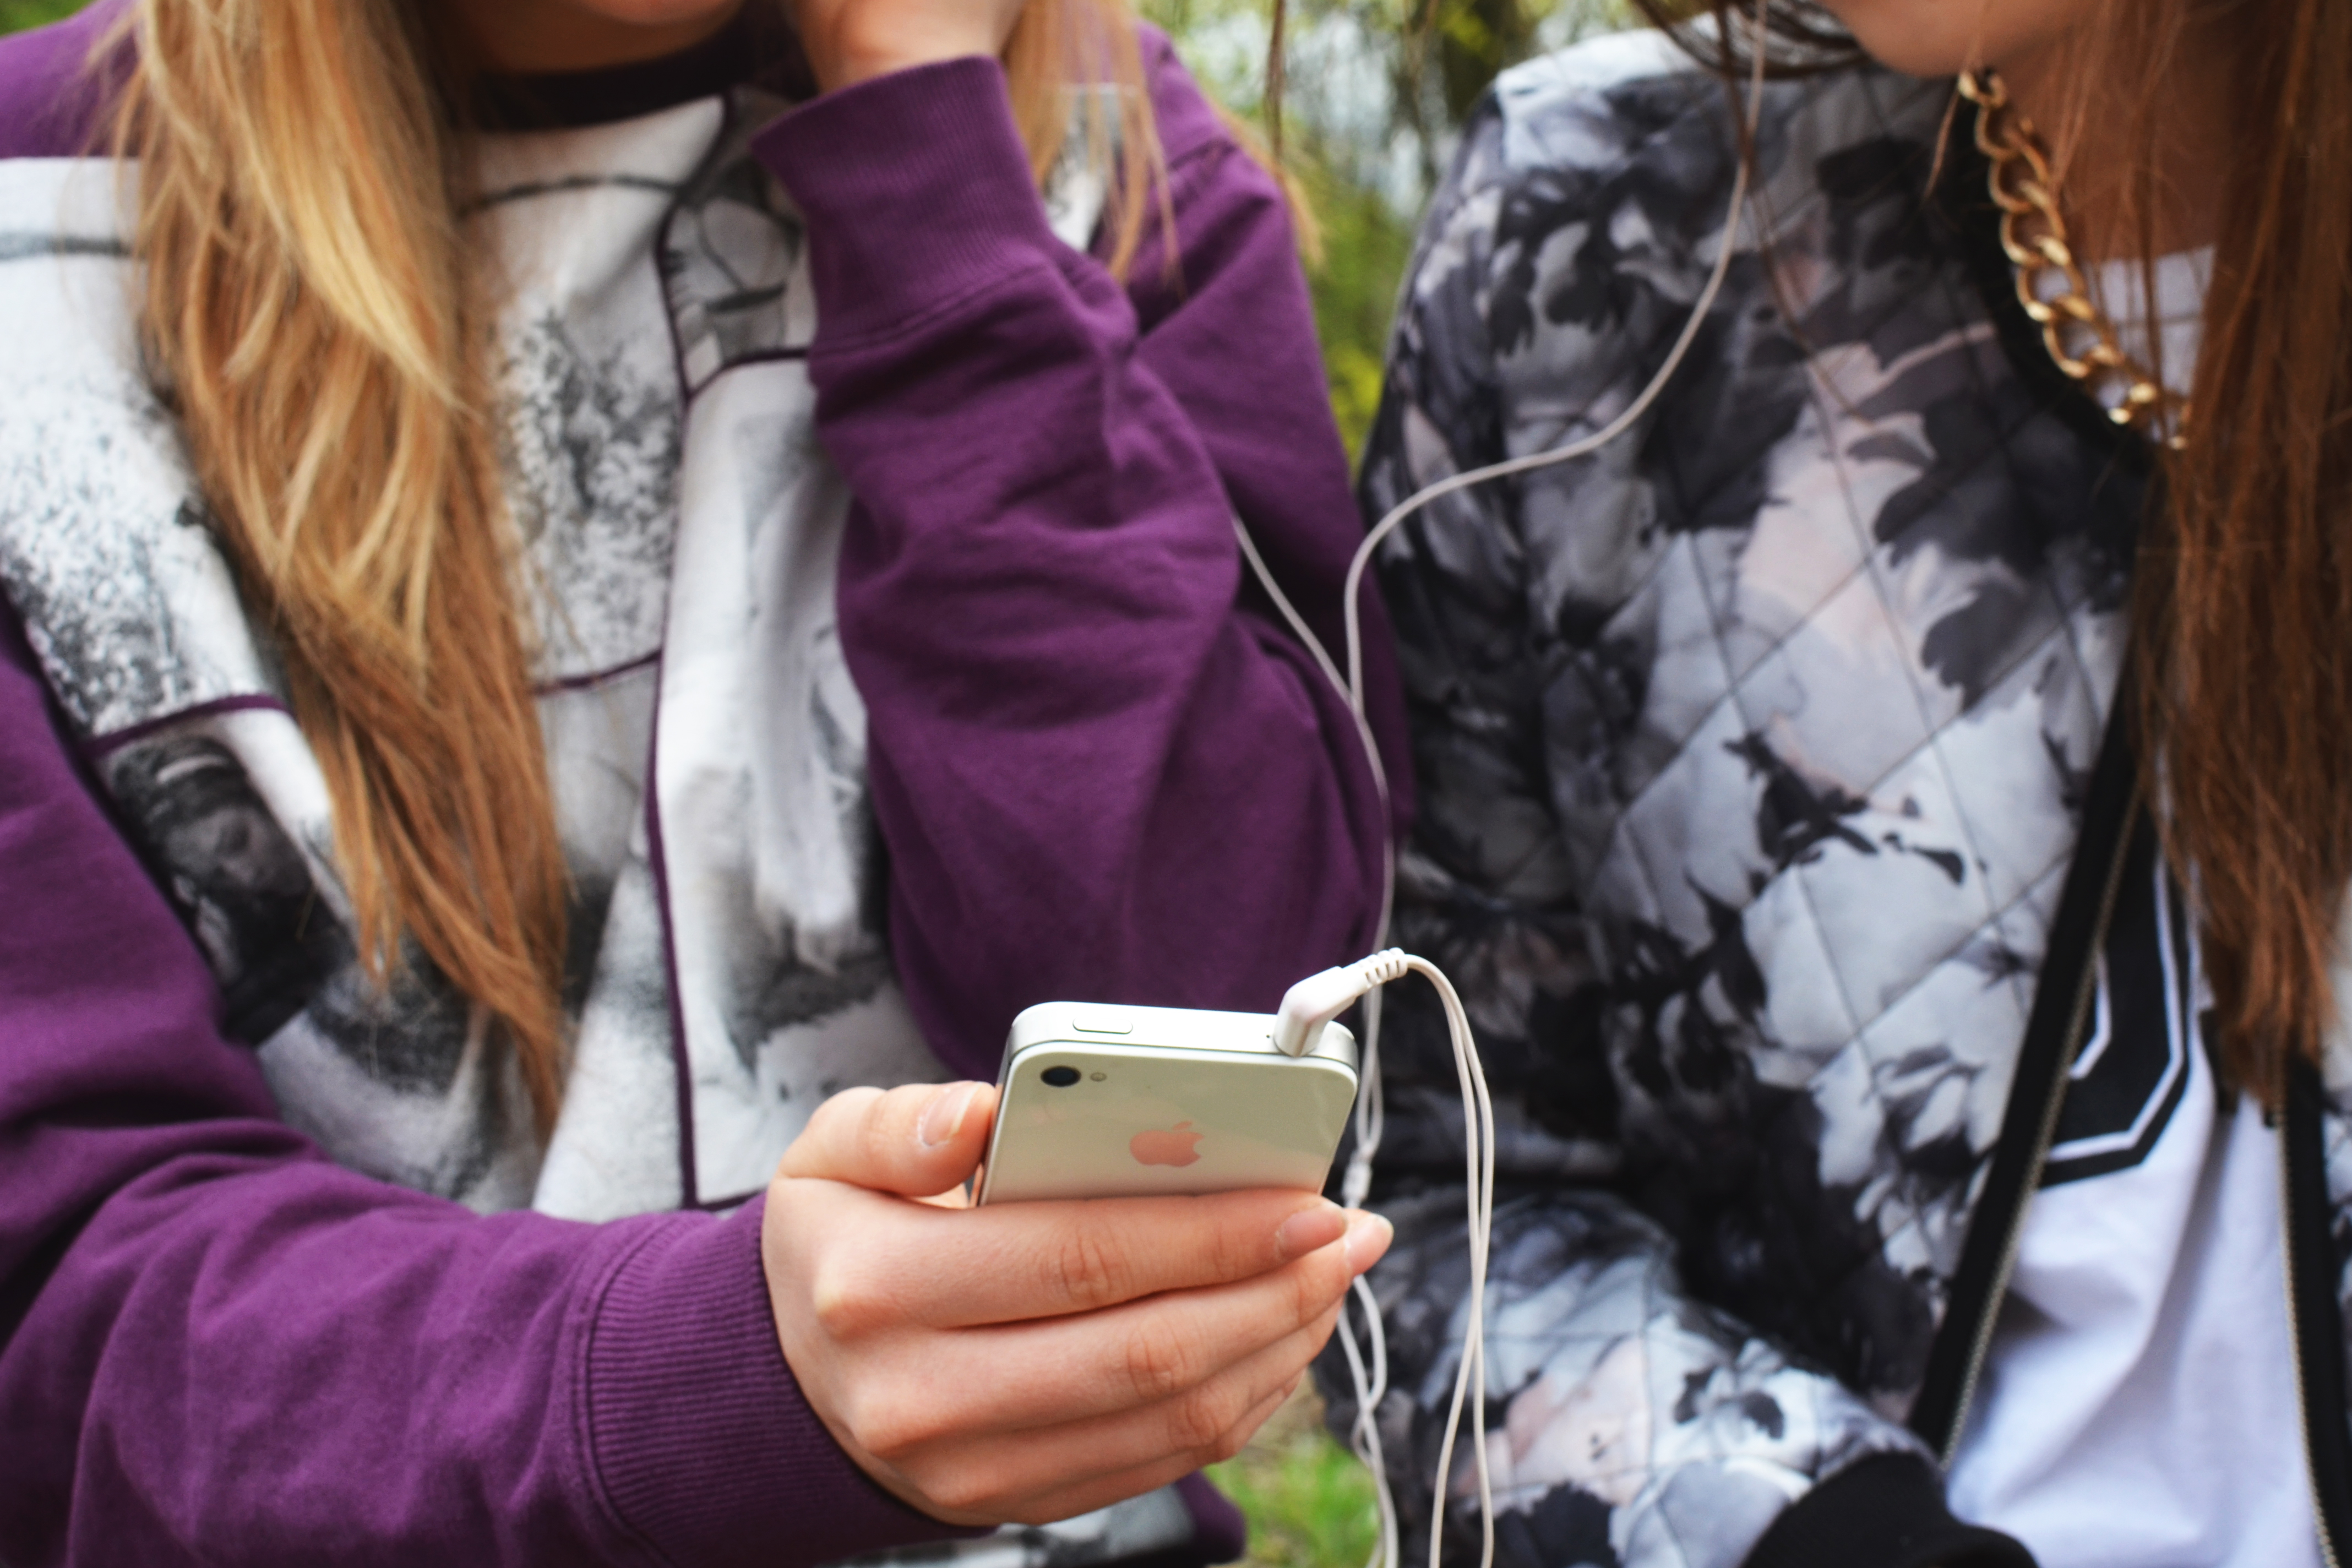 Internet Safety - Children and Teens on Social Media